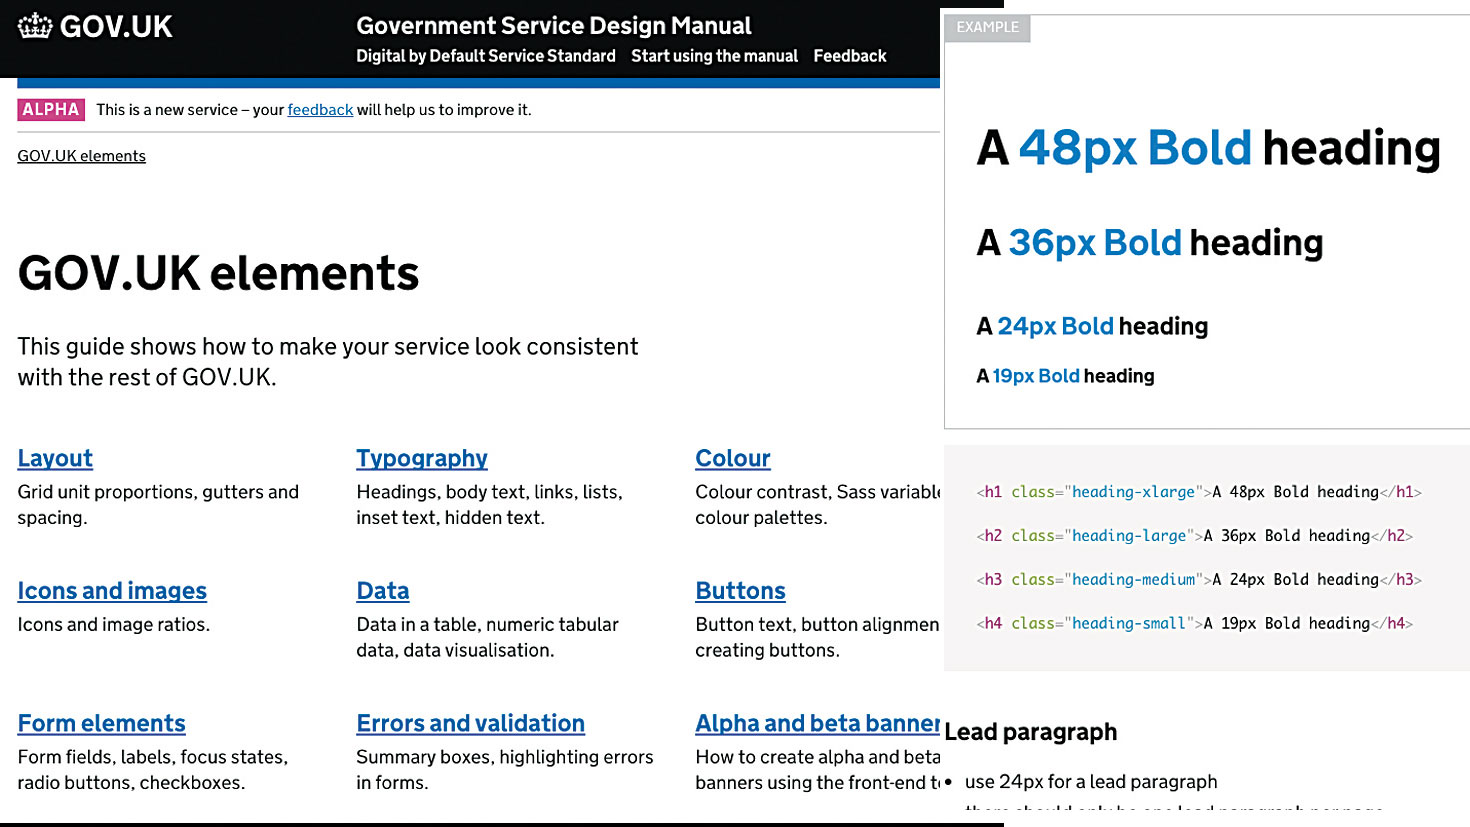 Speed up your web workflow with style guides - GOV.UK